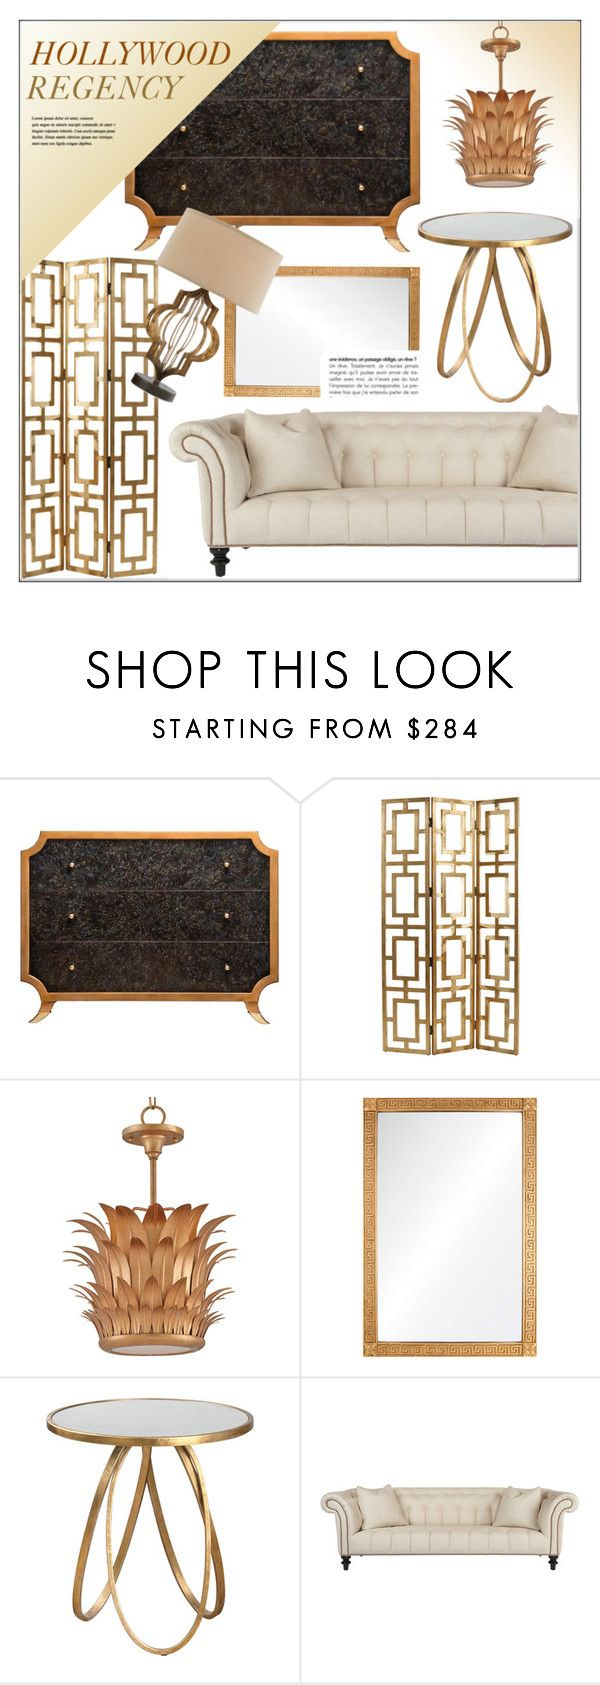 Hollywood  Regency Living by kathykuohome on Polyvore featuring interior, interiors, interior design, home, home decor, interior decorating, gold, Home, homeset and hollywoodregency